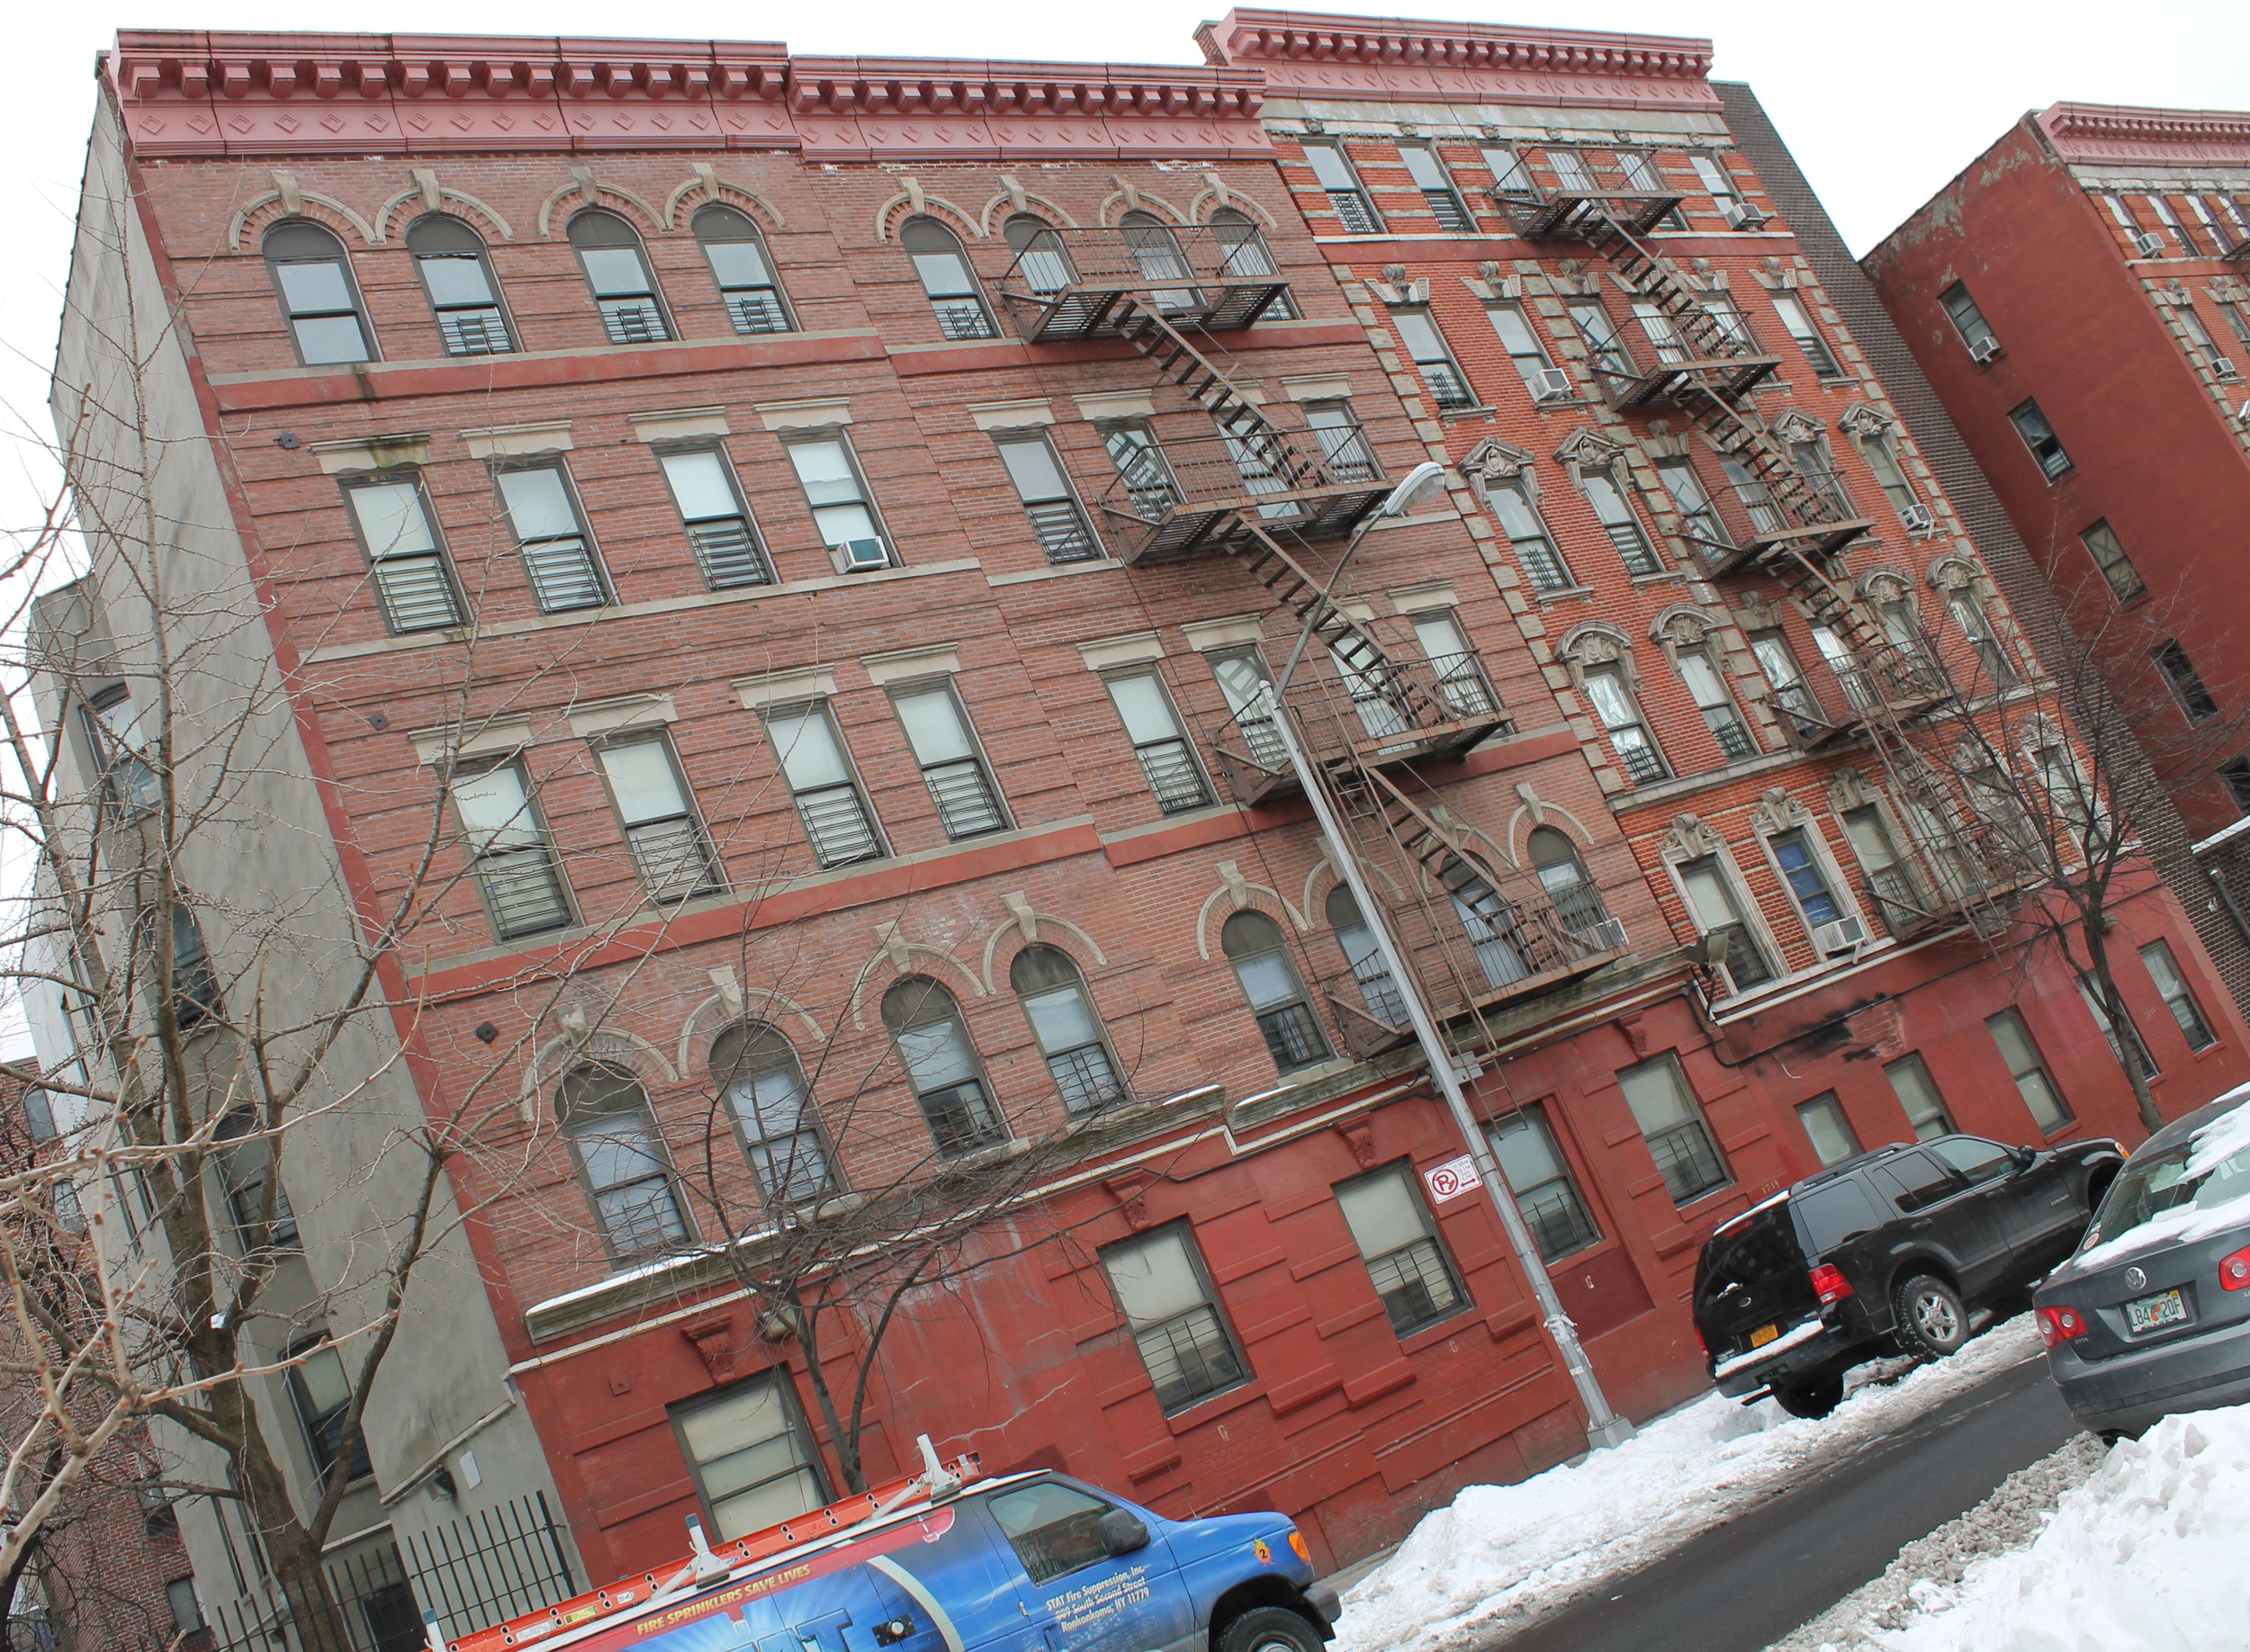 Building 20 of 4-20 East 117th Street, as seen on March 3, 2015. Source : Louis Flores